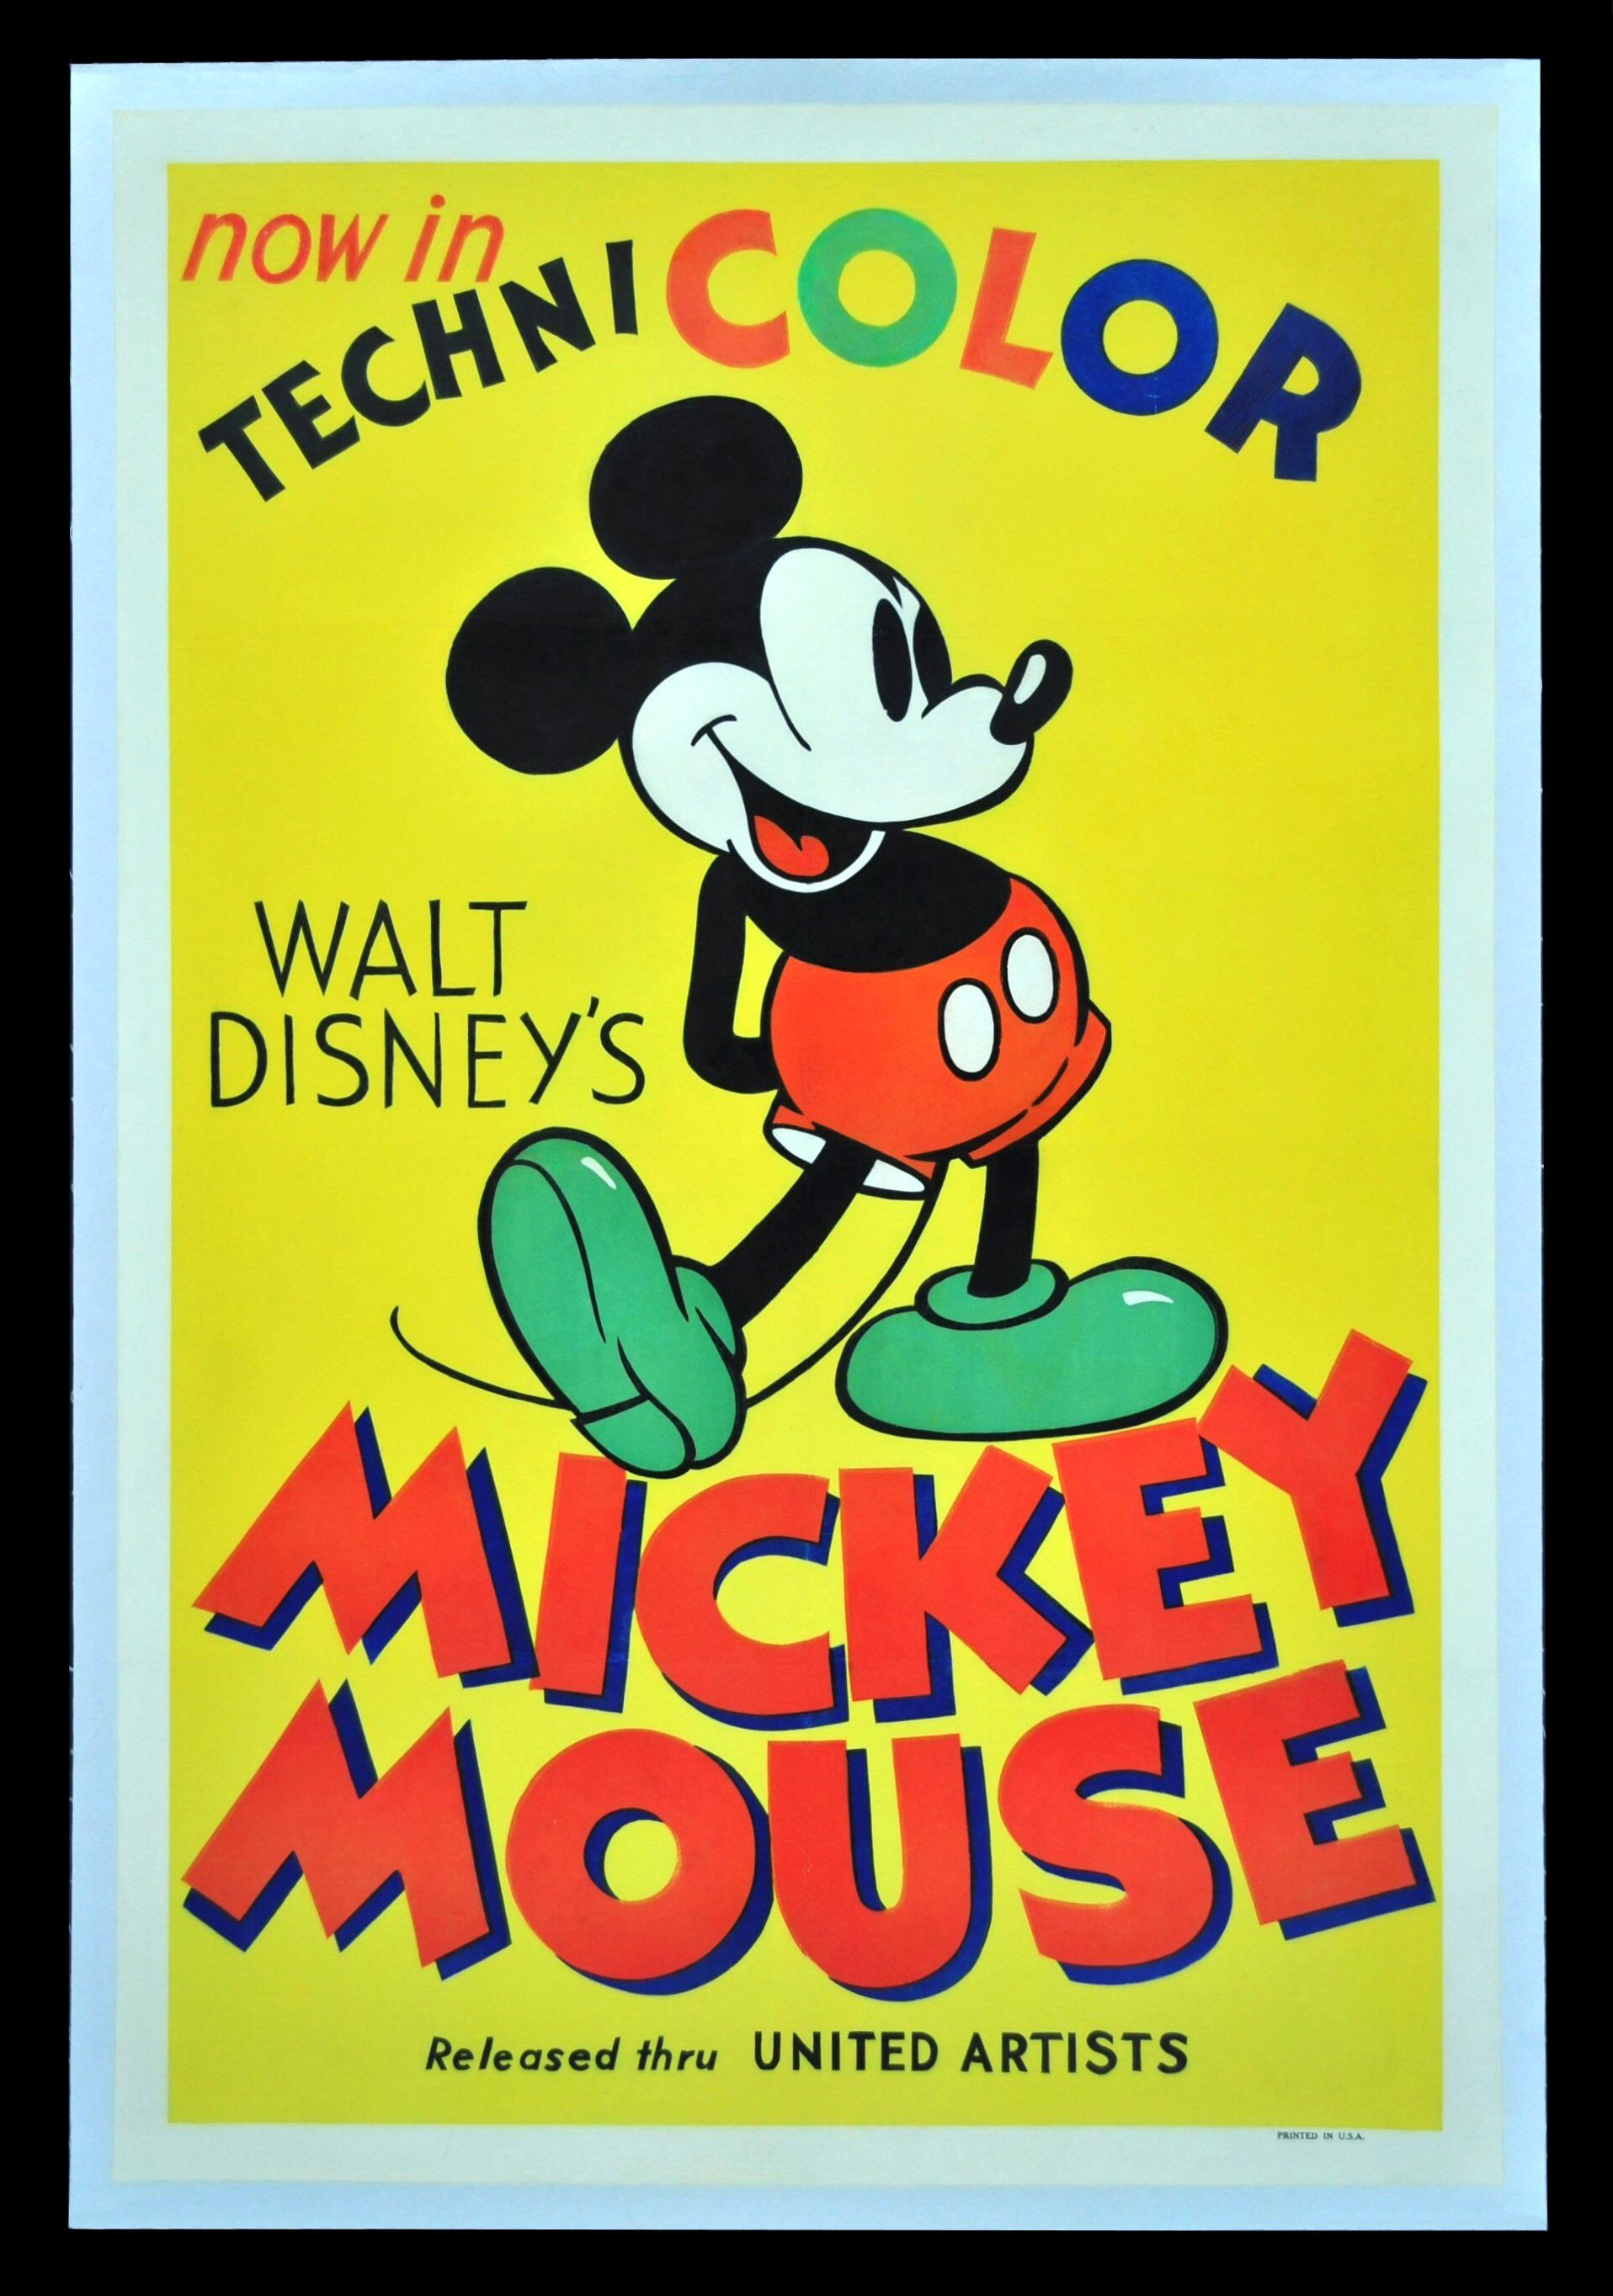 Mickey Mouse #Vintage #poster #Ad Mikke musefilmer  Mickey mouse movies